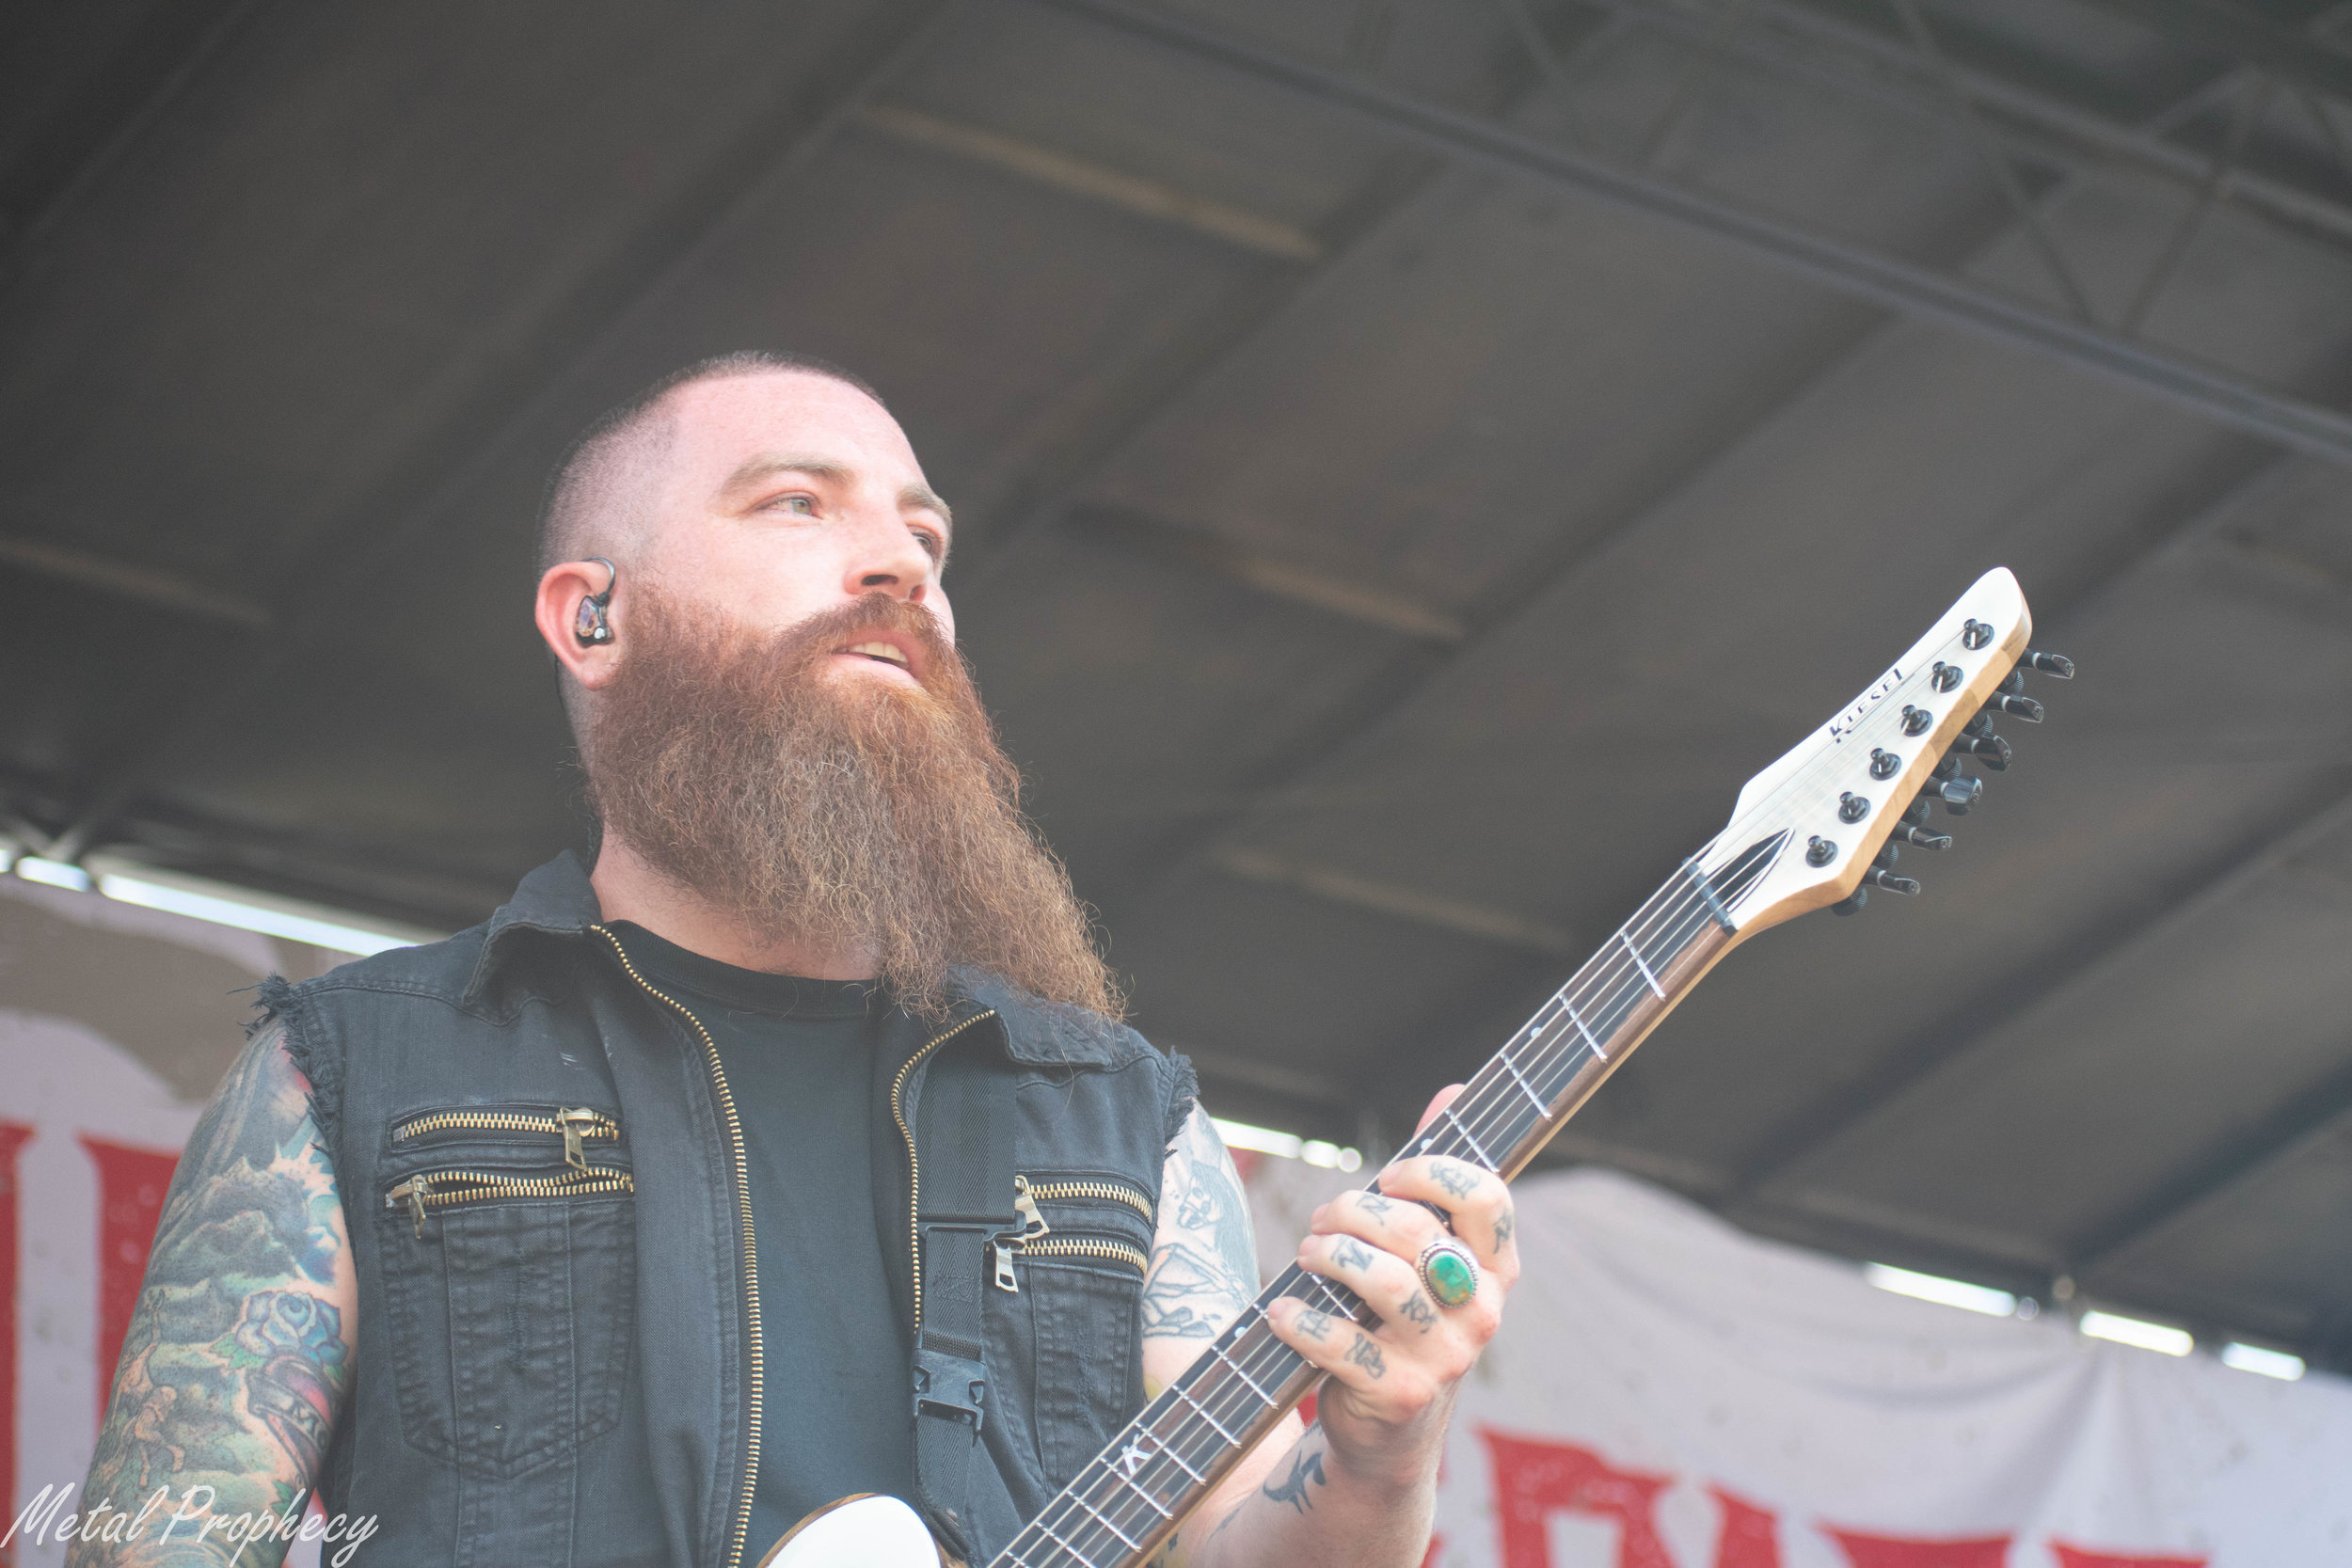 Memphis May Fire at Rockstar Energy Disrupt Festival